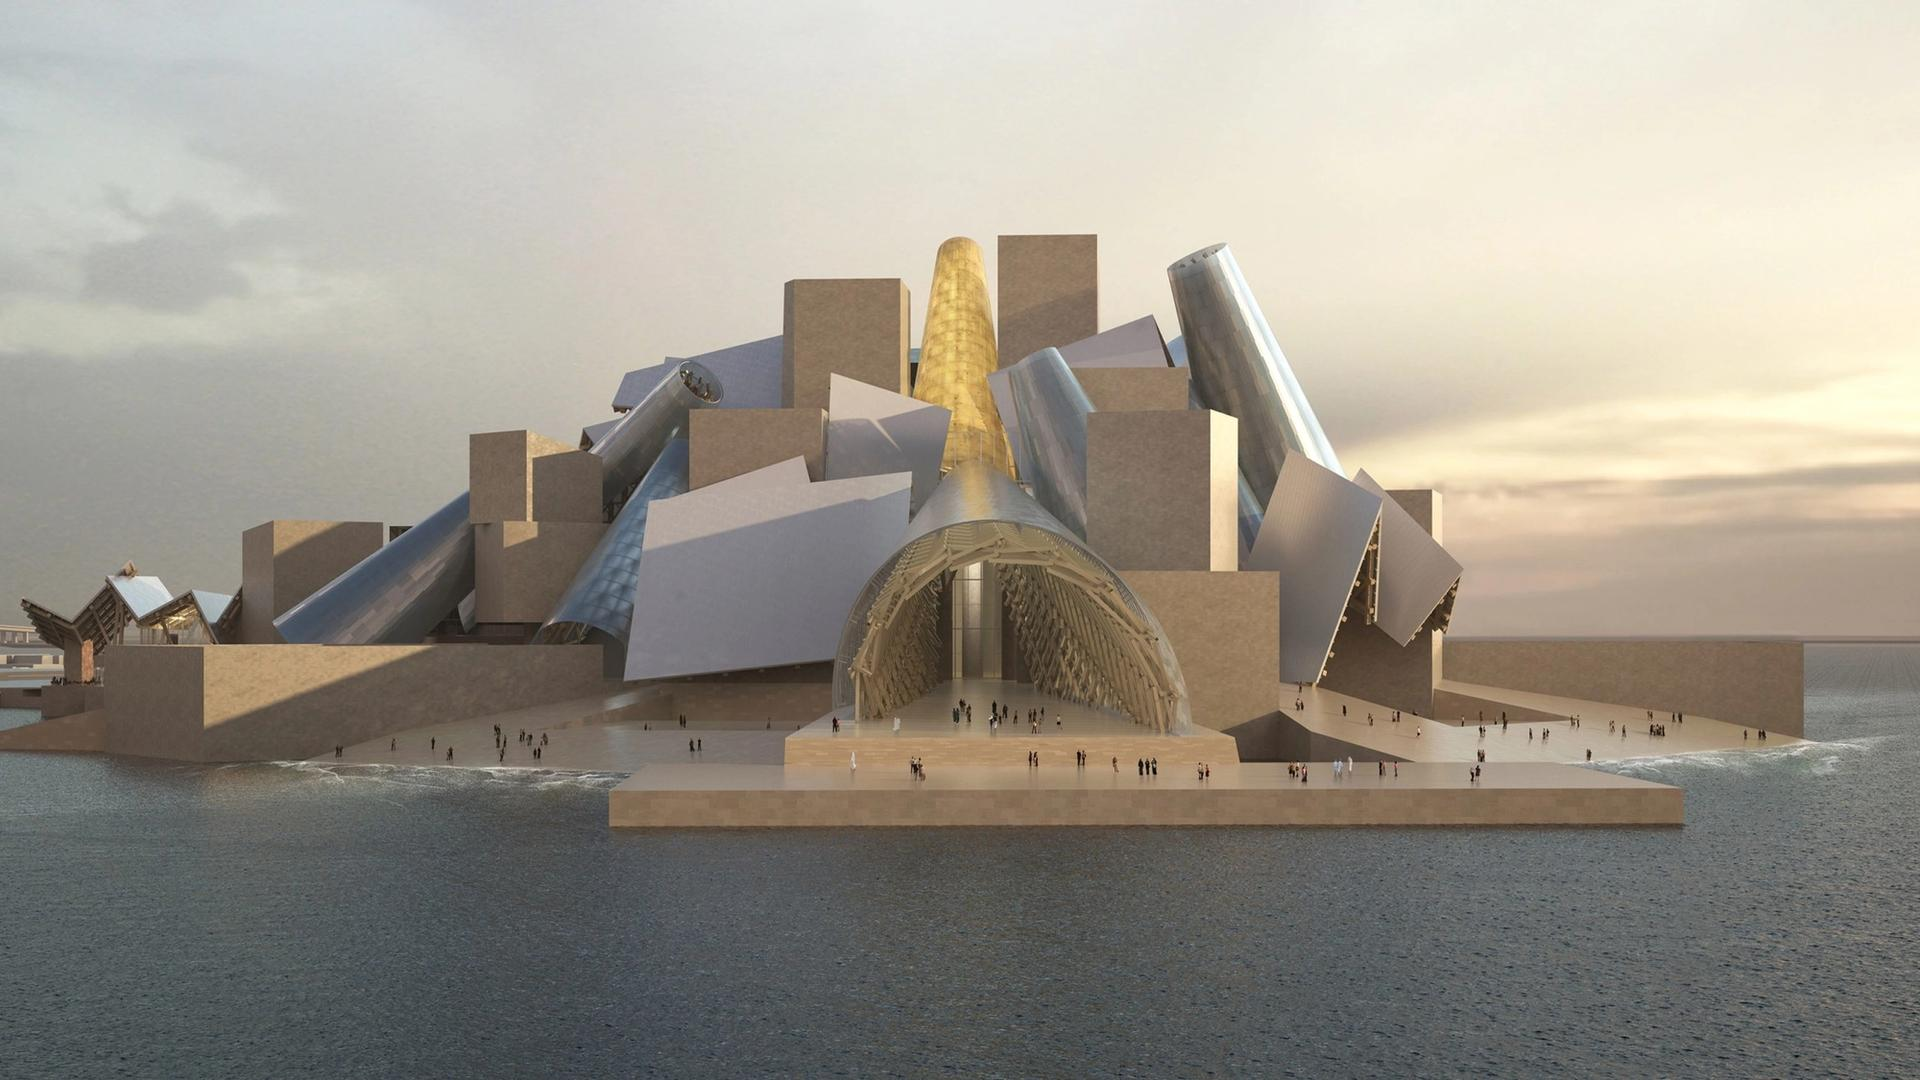 Rendering of the Frank Gehry-designed Guggenheim Abu Dhabi Photo: Courtesy TDIC and Gehry Partners, LLP